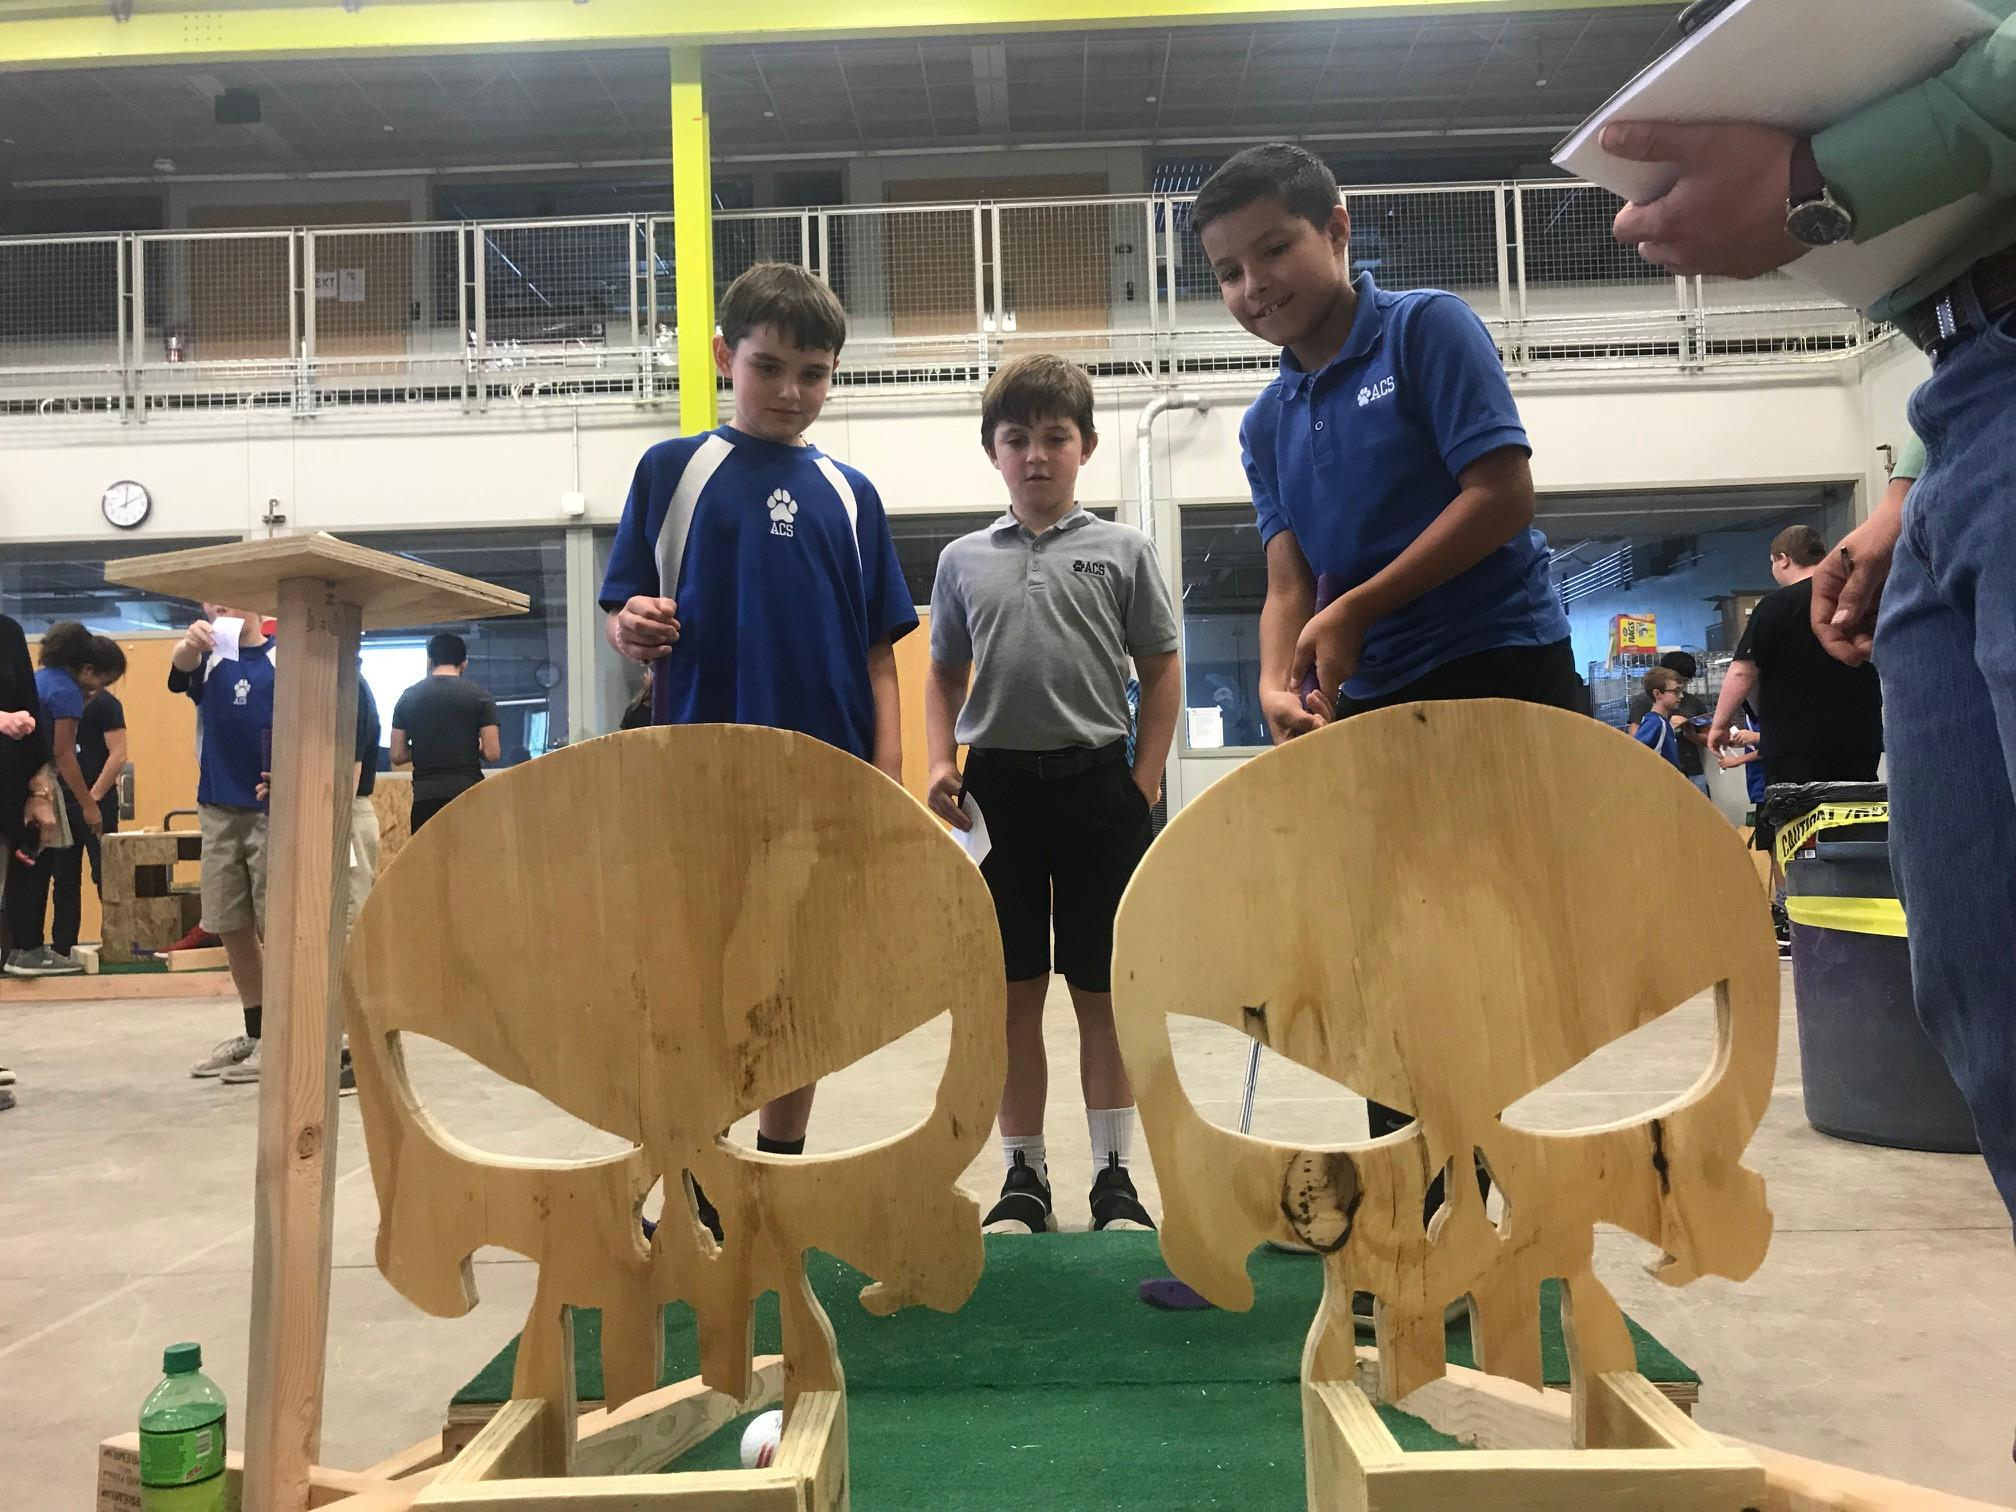 acu-students-build-mini-golf-holes-op-1-cp-1508452323505-9035301-ver1-0.jpg